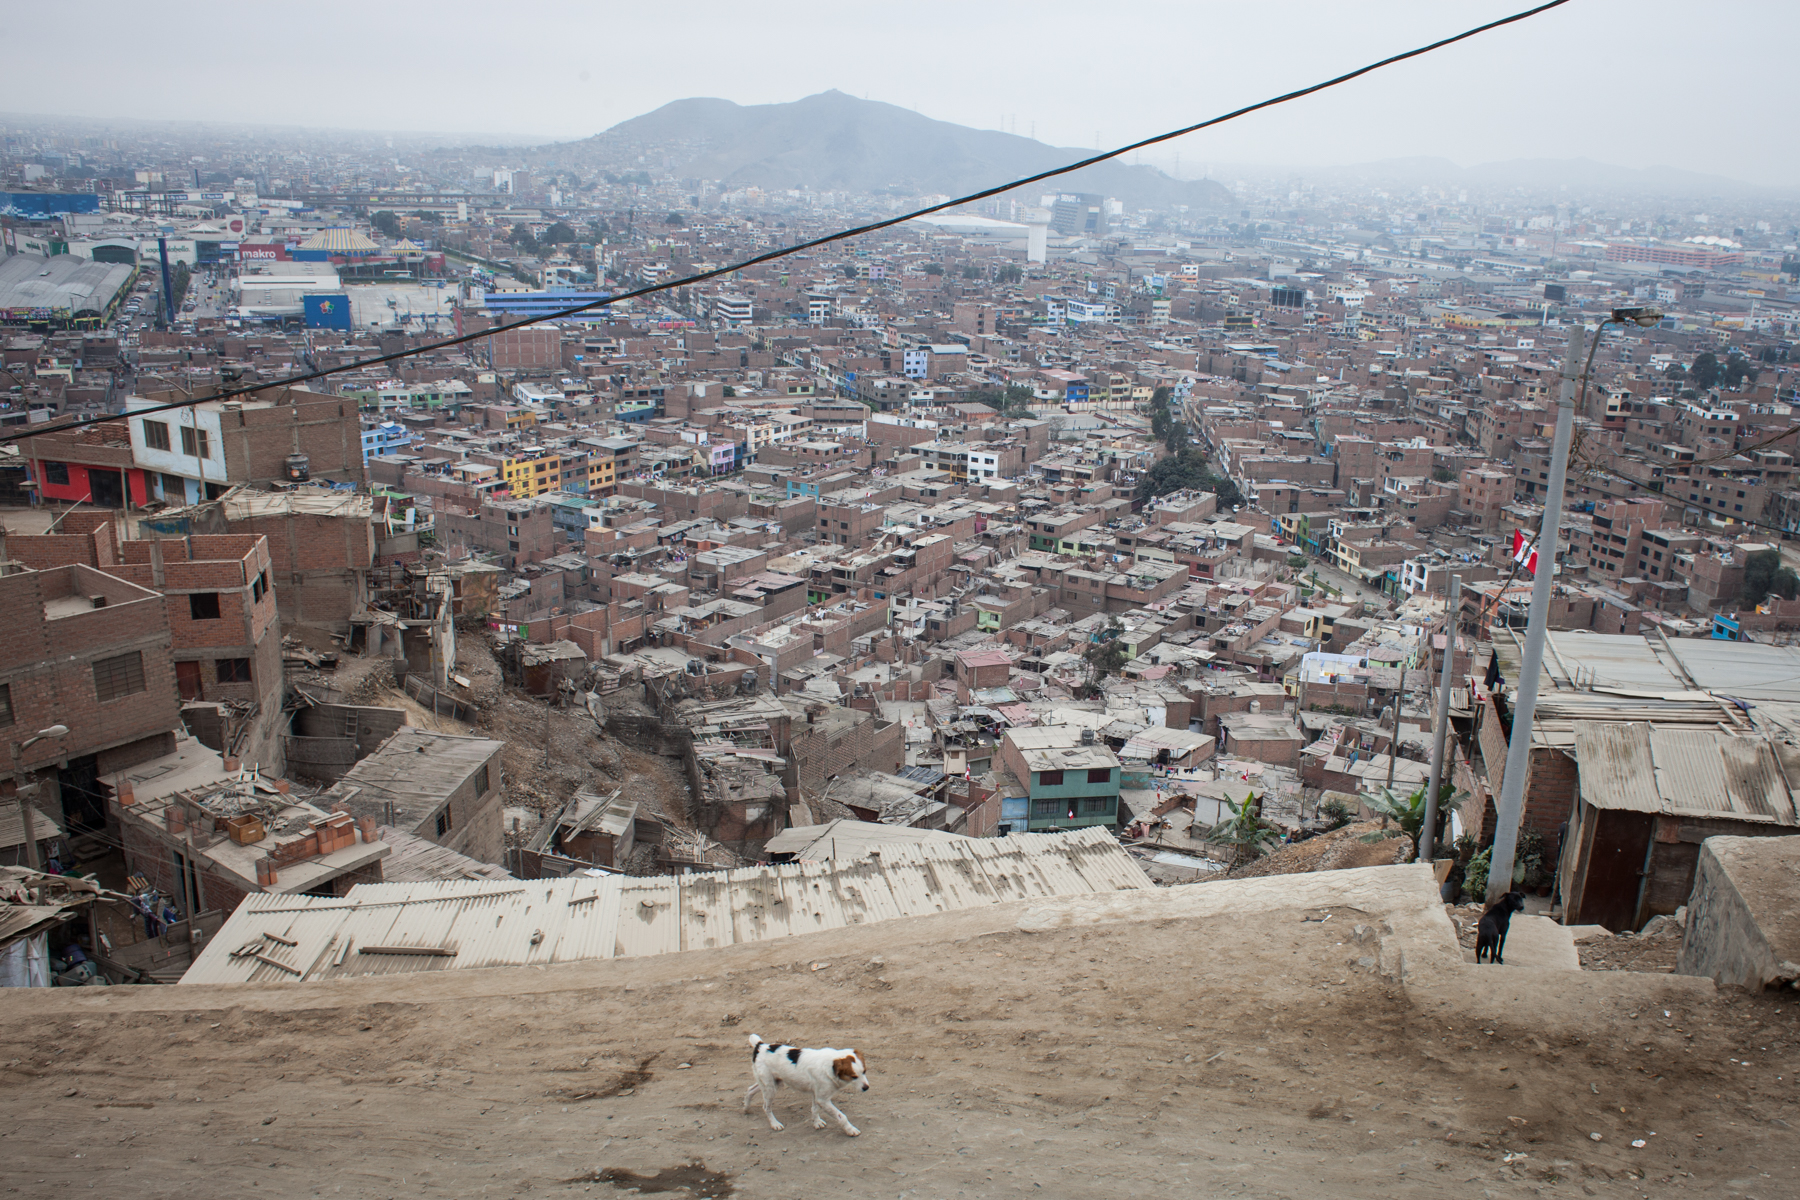 About a third of Peru's 30 million residents live in the capital, Lima. The majority of the country's HIV cases are concentrated here.